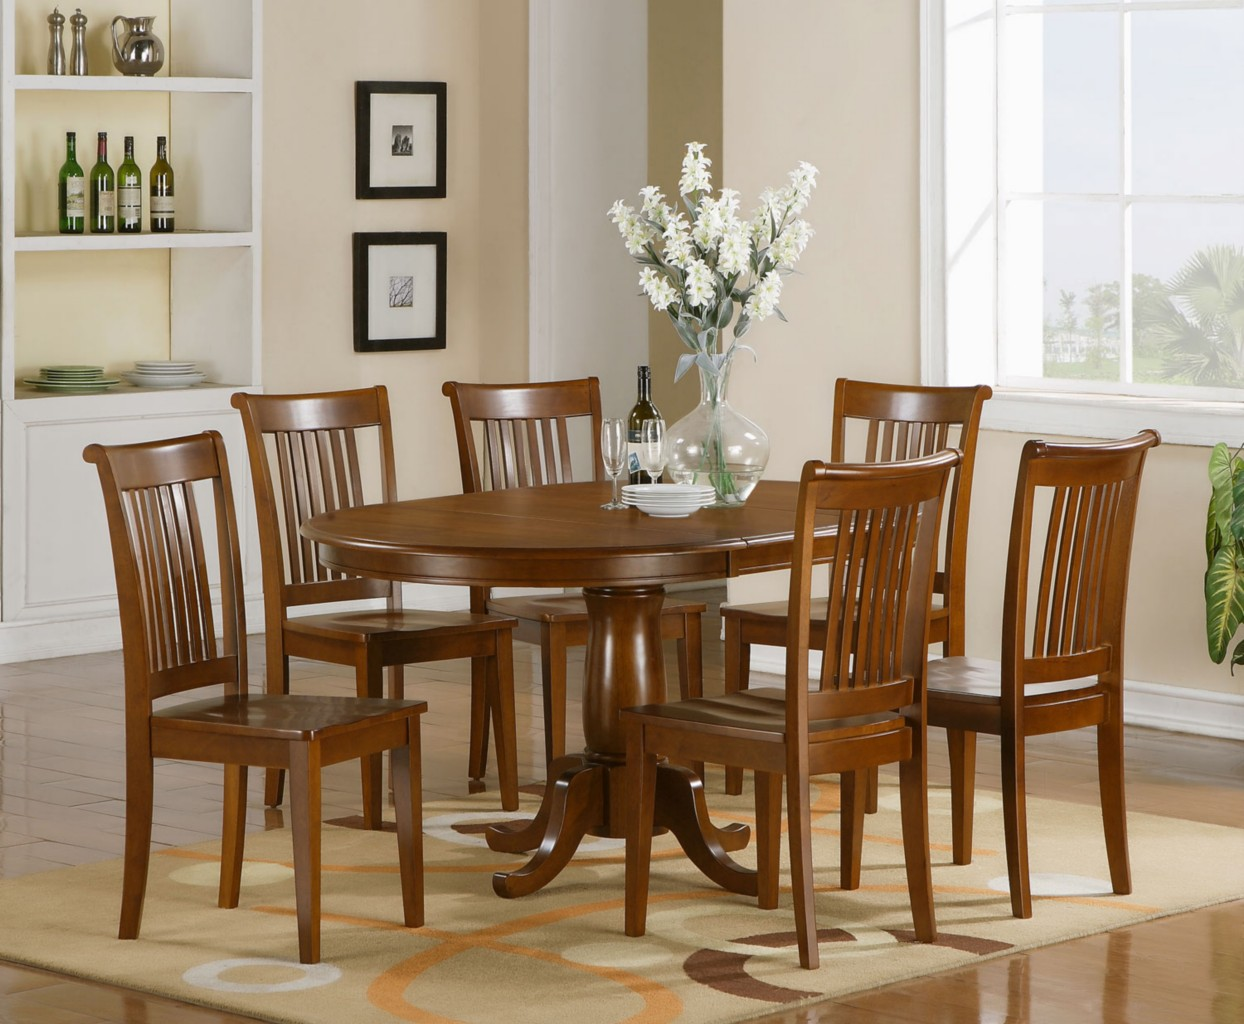 Kitchen dinette sets Photo - 8